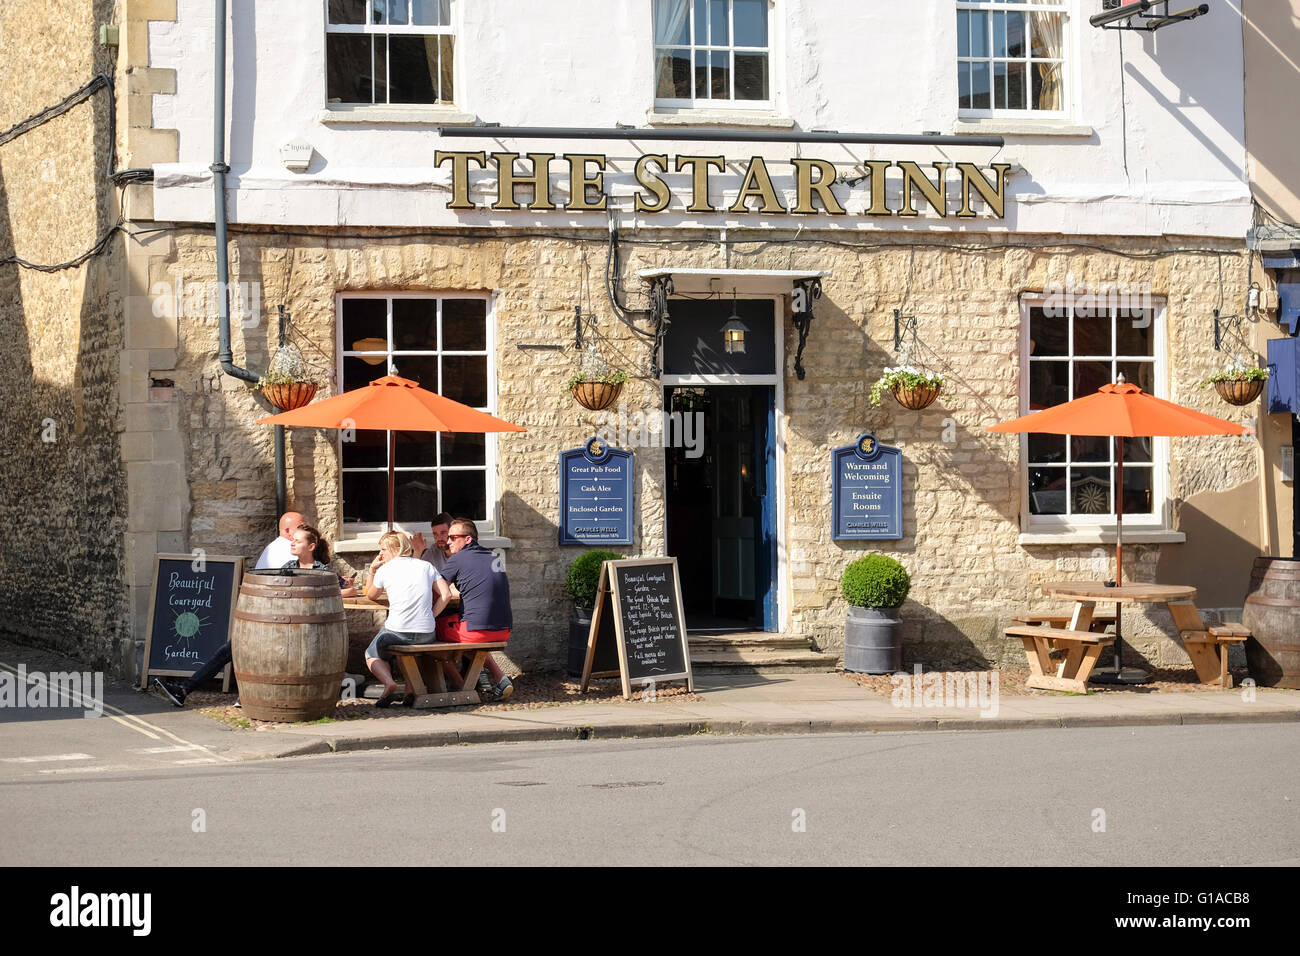 The Star Inn in the the village of Woodstock in Oxfordshire - Stock Image